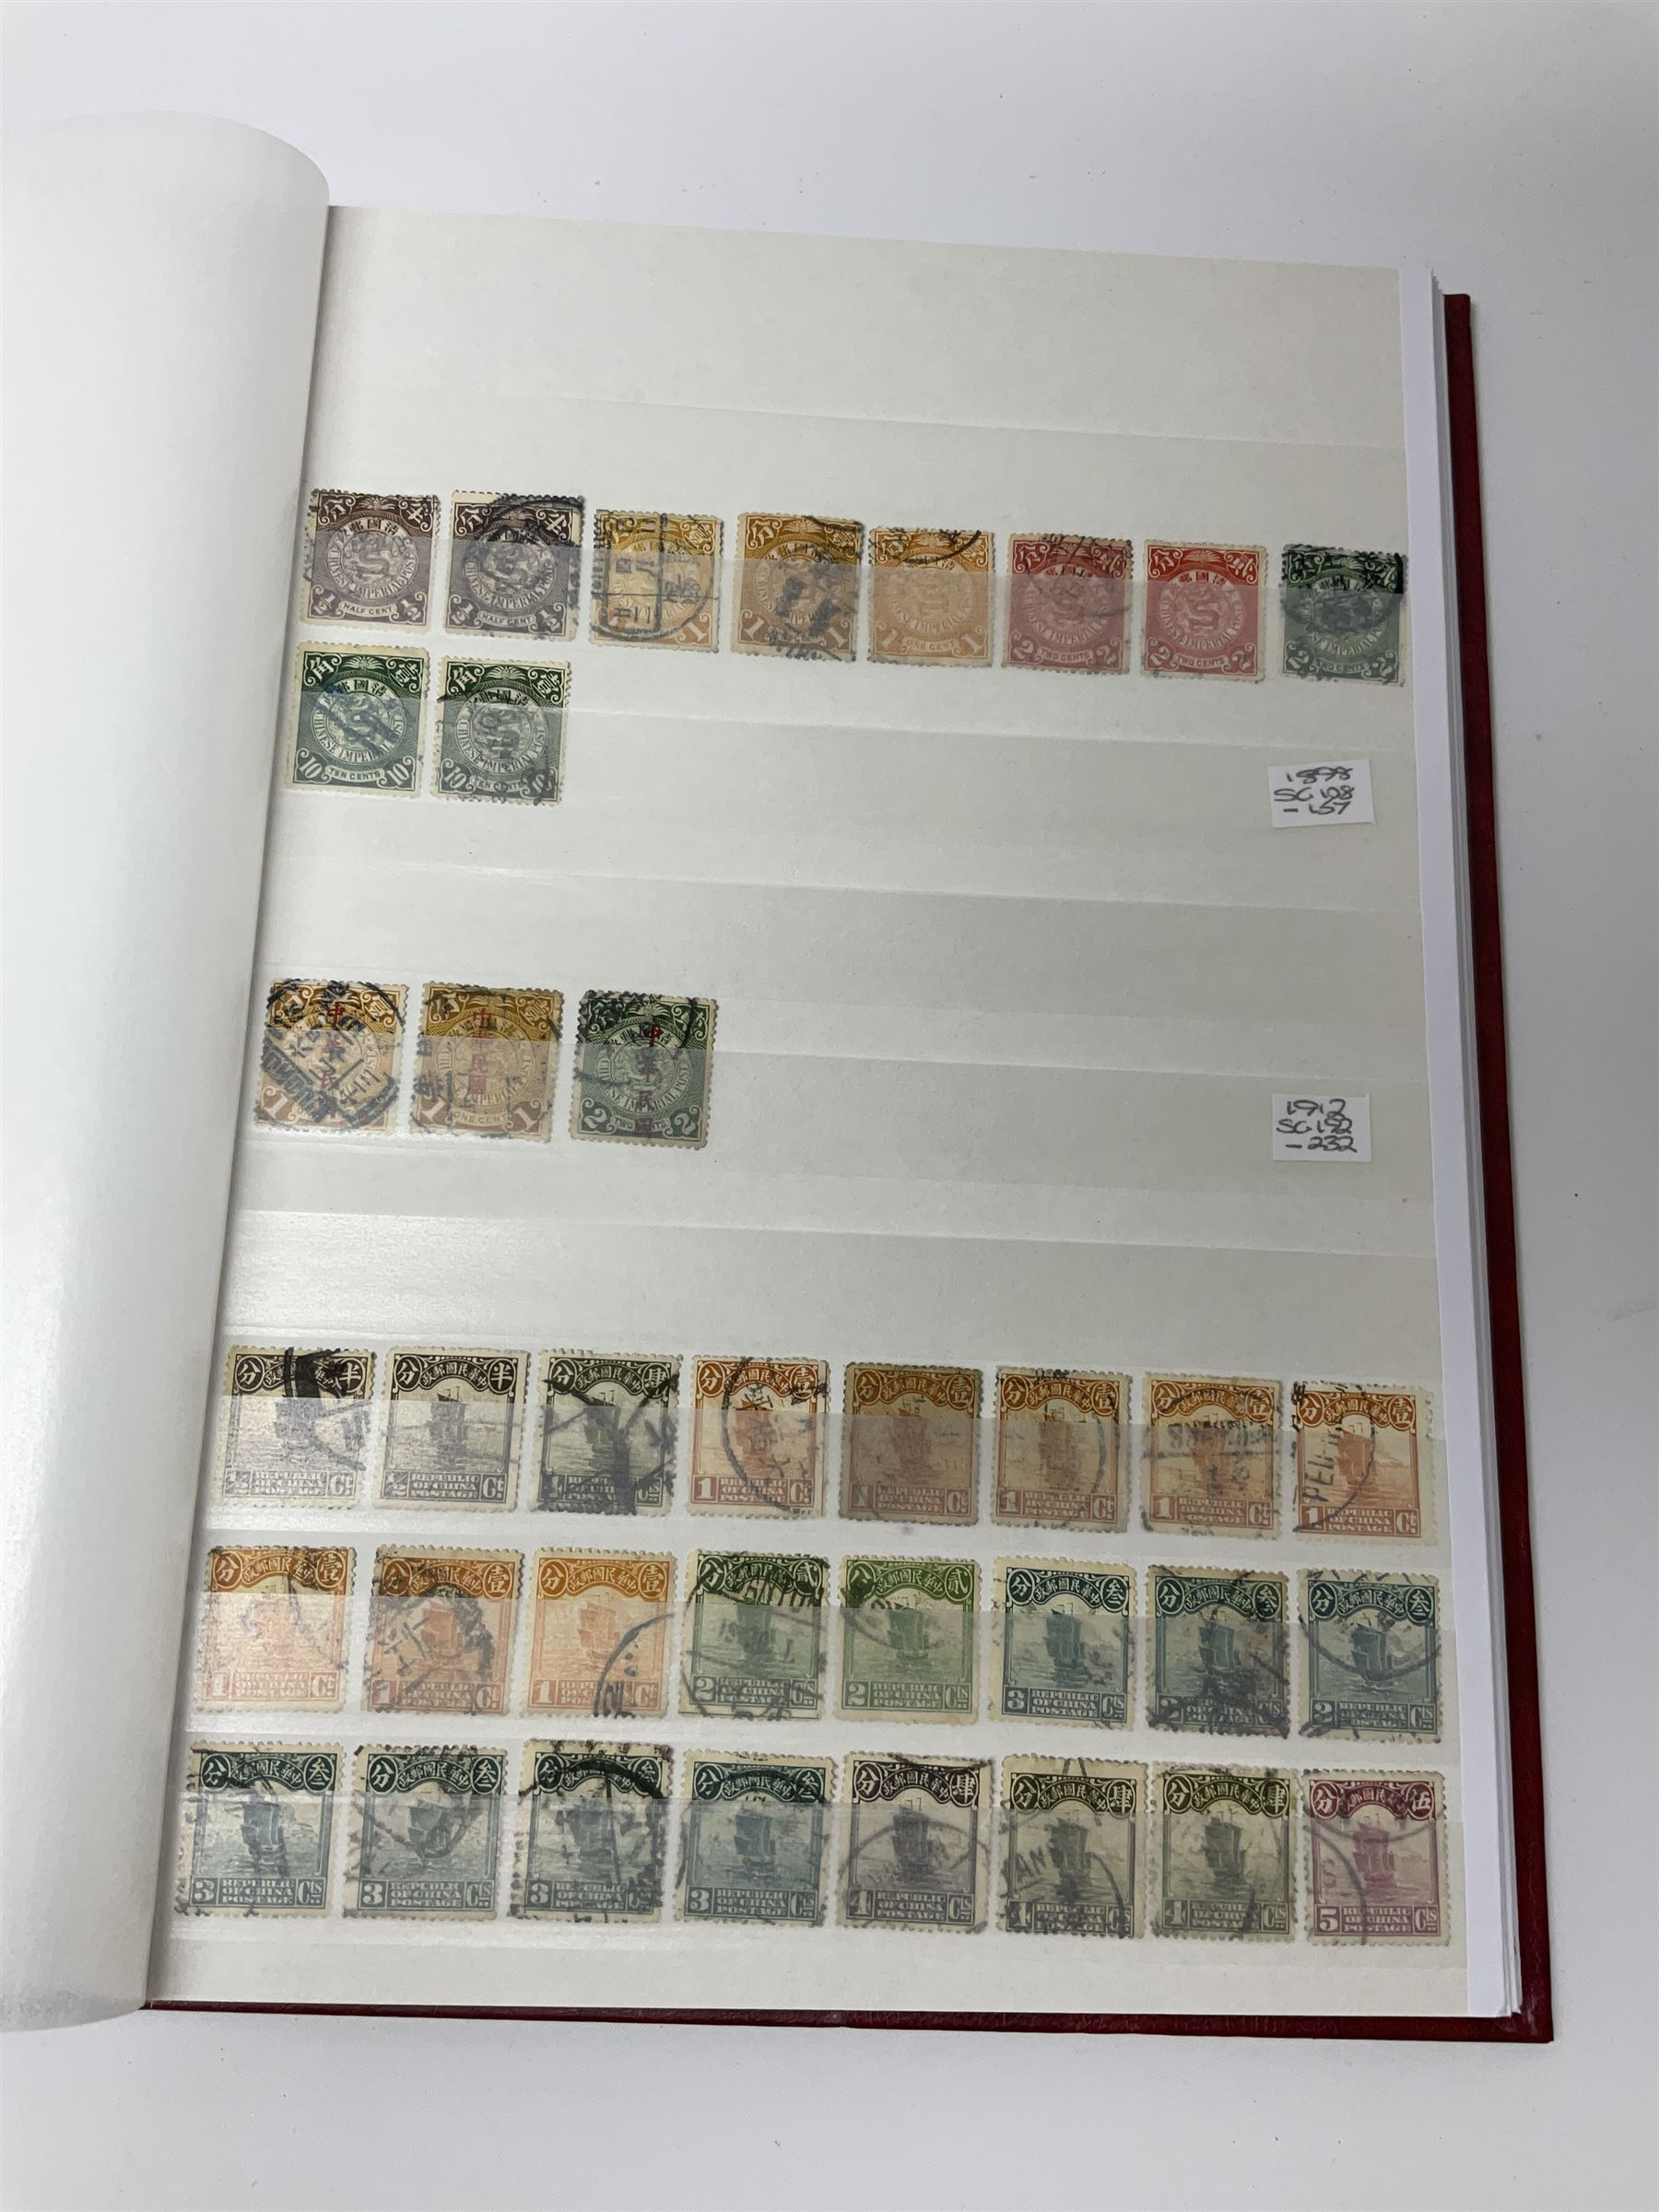 Mostly Chinese stamps in one stockbook - Image 2 of 7